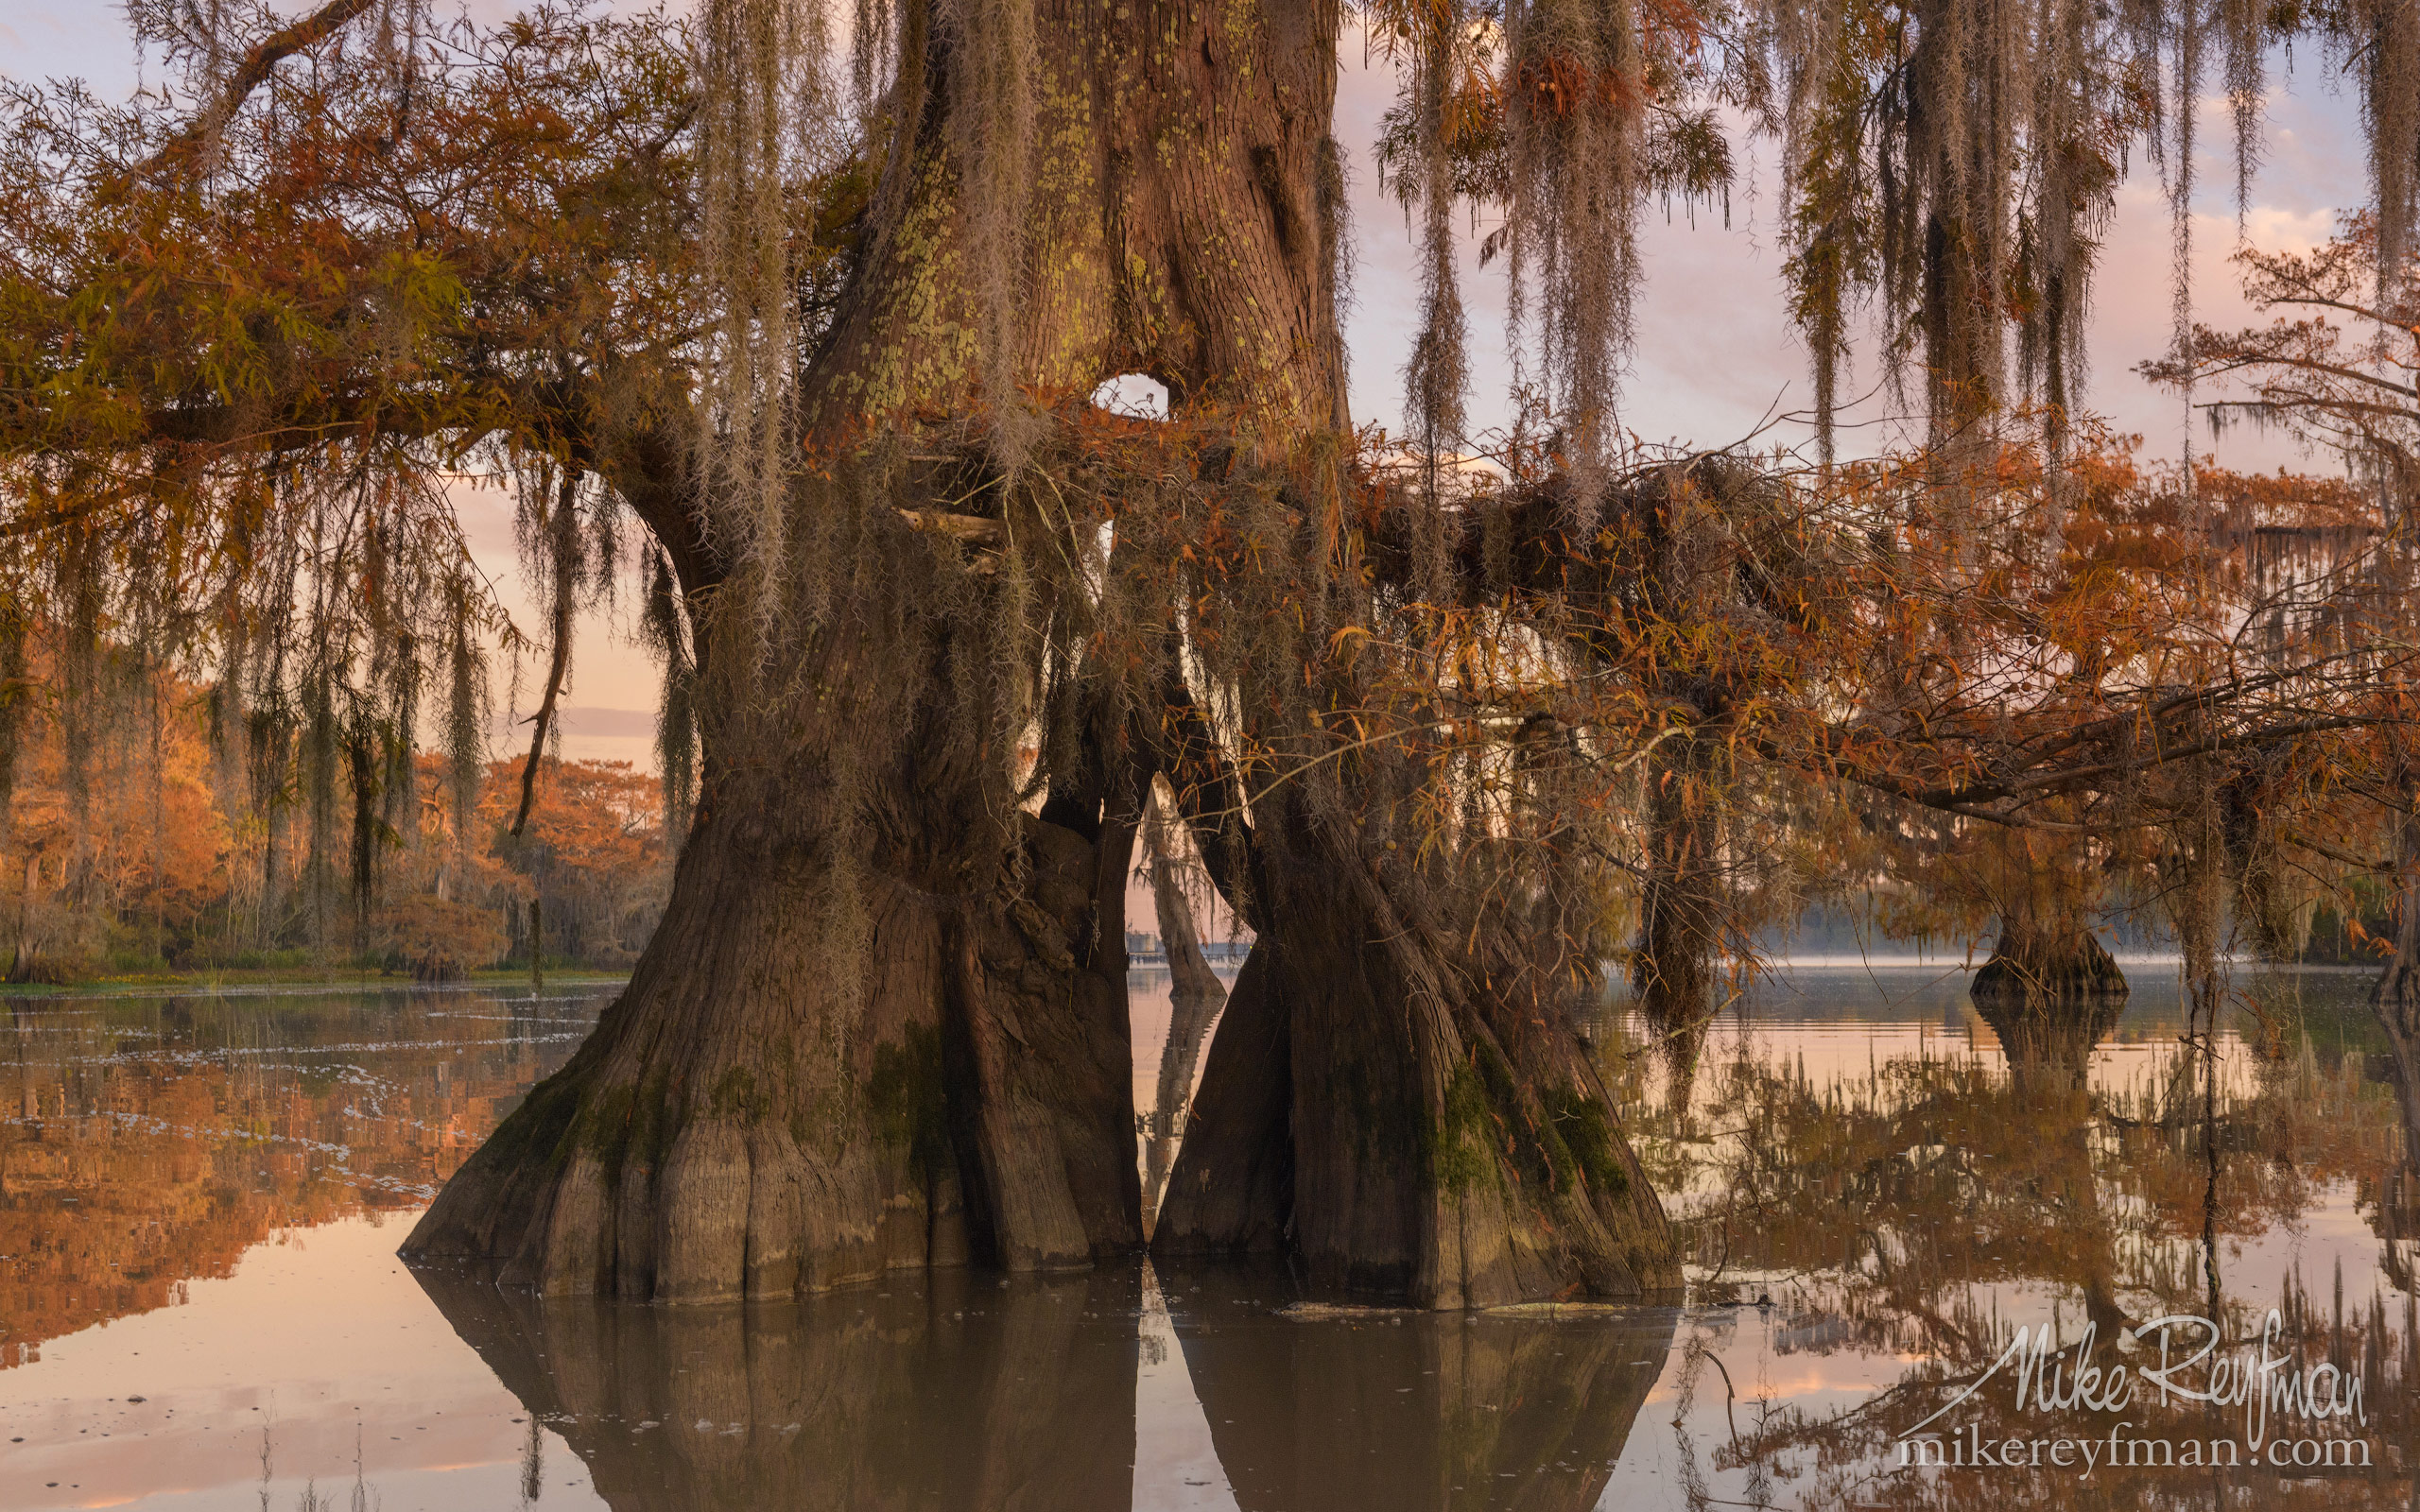 Spanish Moss on the Bald Cypress trees. Lake Fausse, Louisiana, US 025-LT1-50A4347.jpg - Bold Cypress and Tupelo Trees in the swamps of Atchafalaya River Basin. Caddo, Martin and Fousse Lakes. Texas/Louisiana, USA. - Mike Reyfman Photography